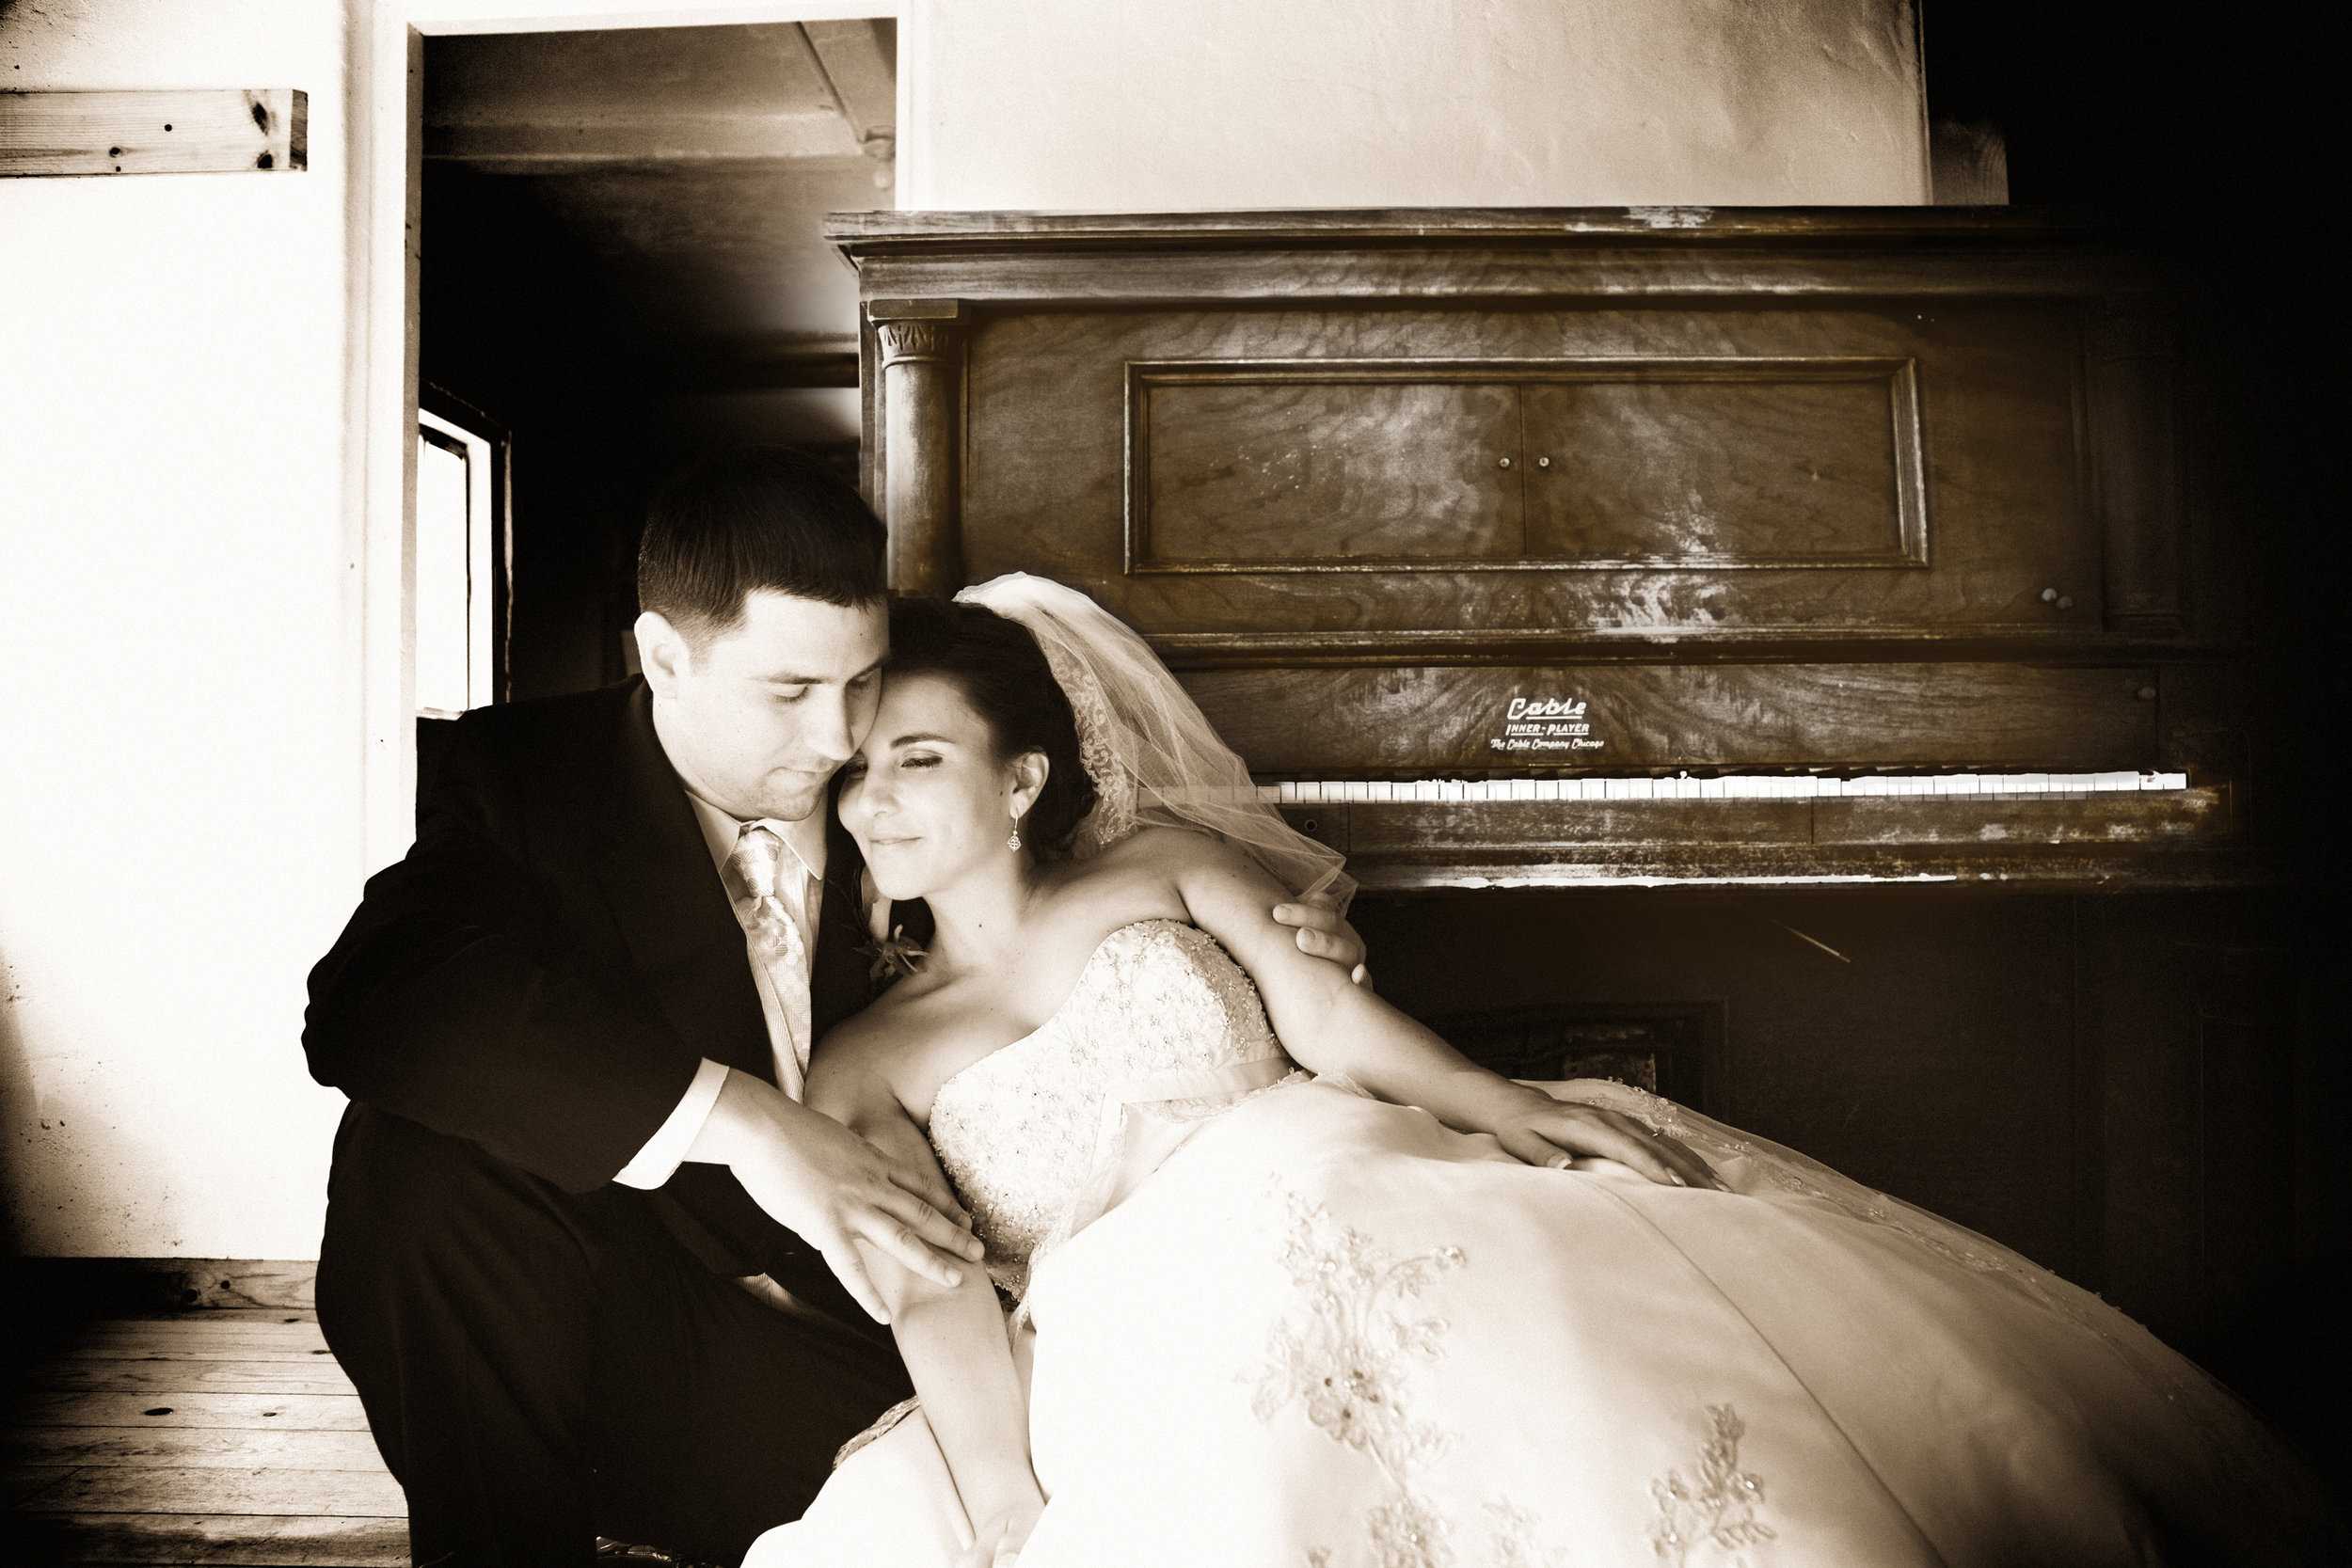 1 bride and groom pose cute wedding pictures husband and wife poses moment together pictures Jane Jordan Photography Life Design Event.jpg